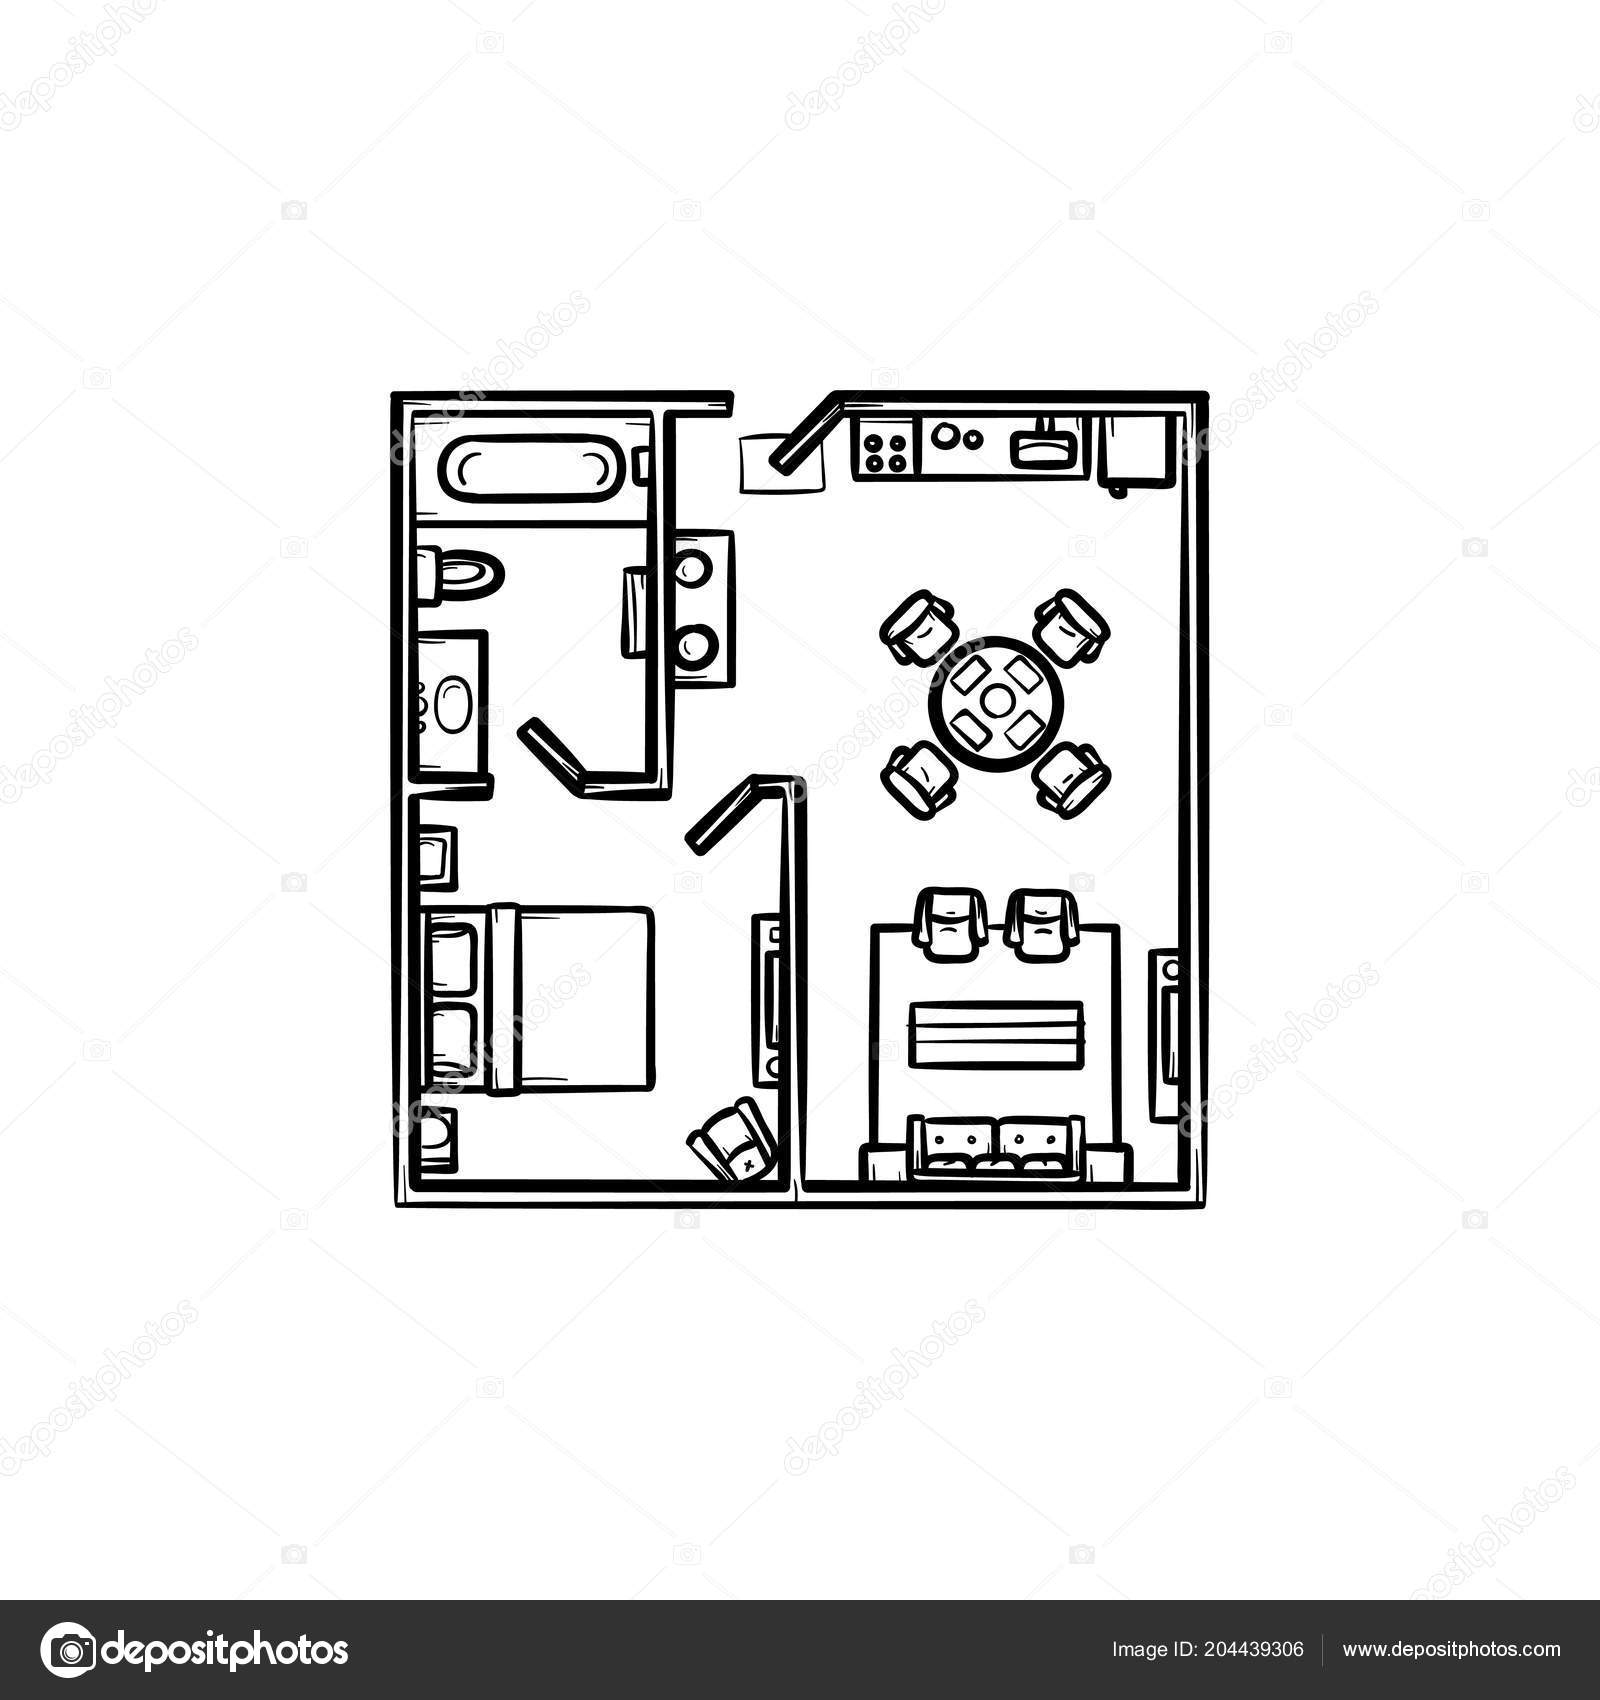 Hand drawn floor plans | Floor plan with furniture hand ... on construction icons, workshop icons, drafting icons, design icons, land icons, fireplace icons, farm icons, architecture icons, drawing icons, head icons, study icons, foundation icons, room icons, builder icons, remodeling icons, human icons, london icons, housing icons, household icons, architectural icons,